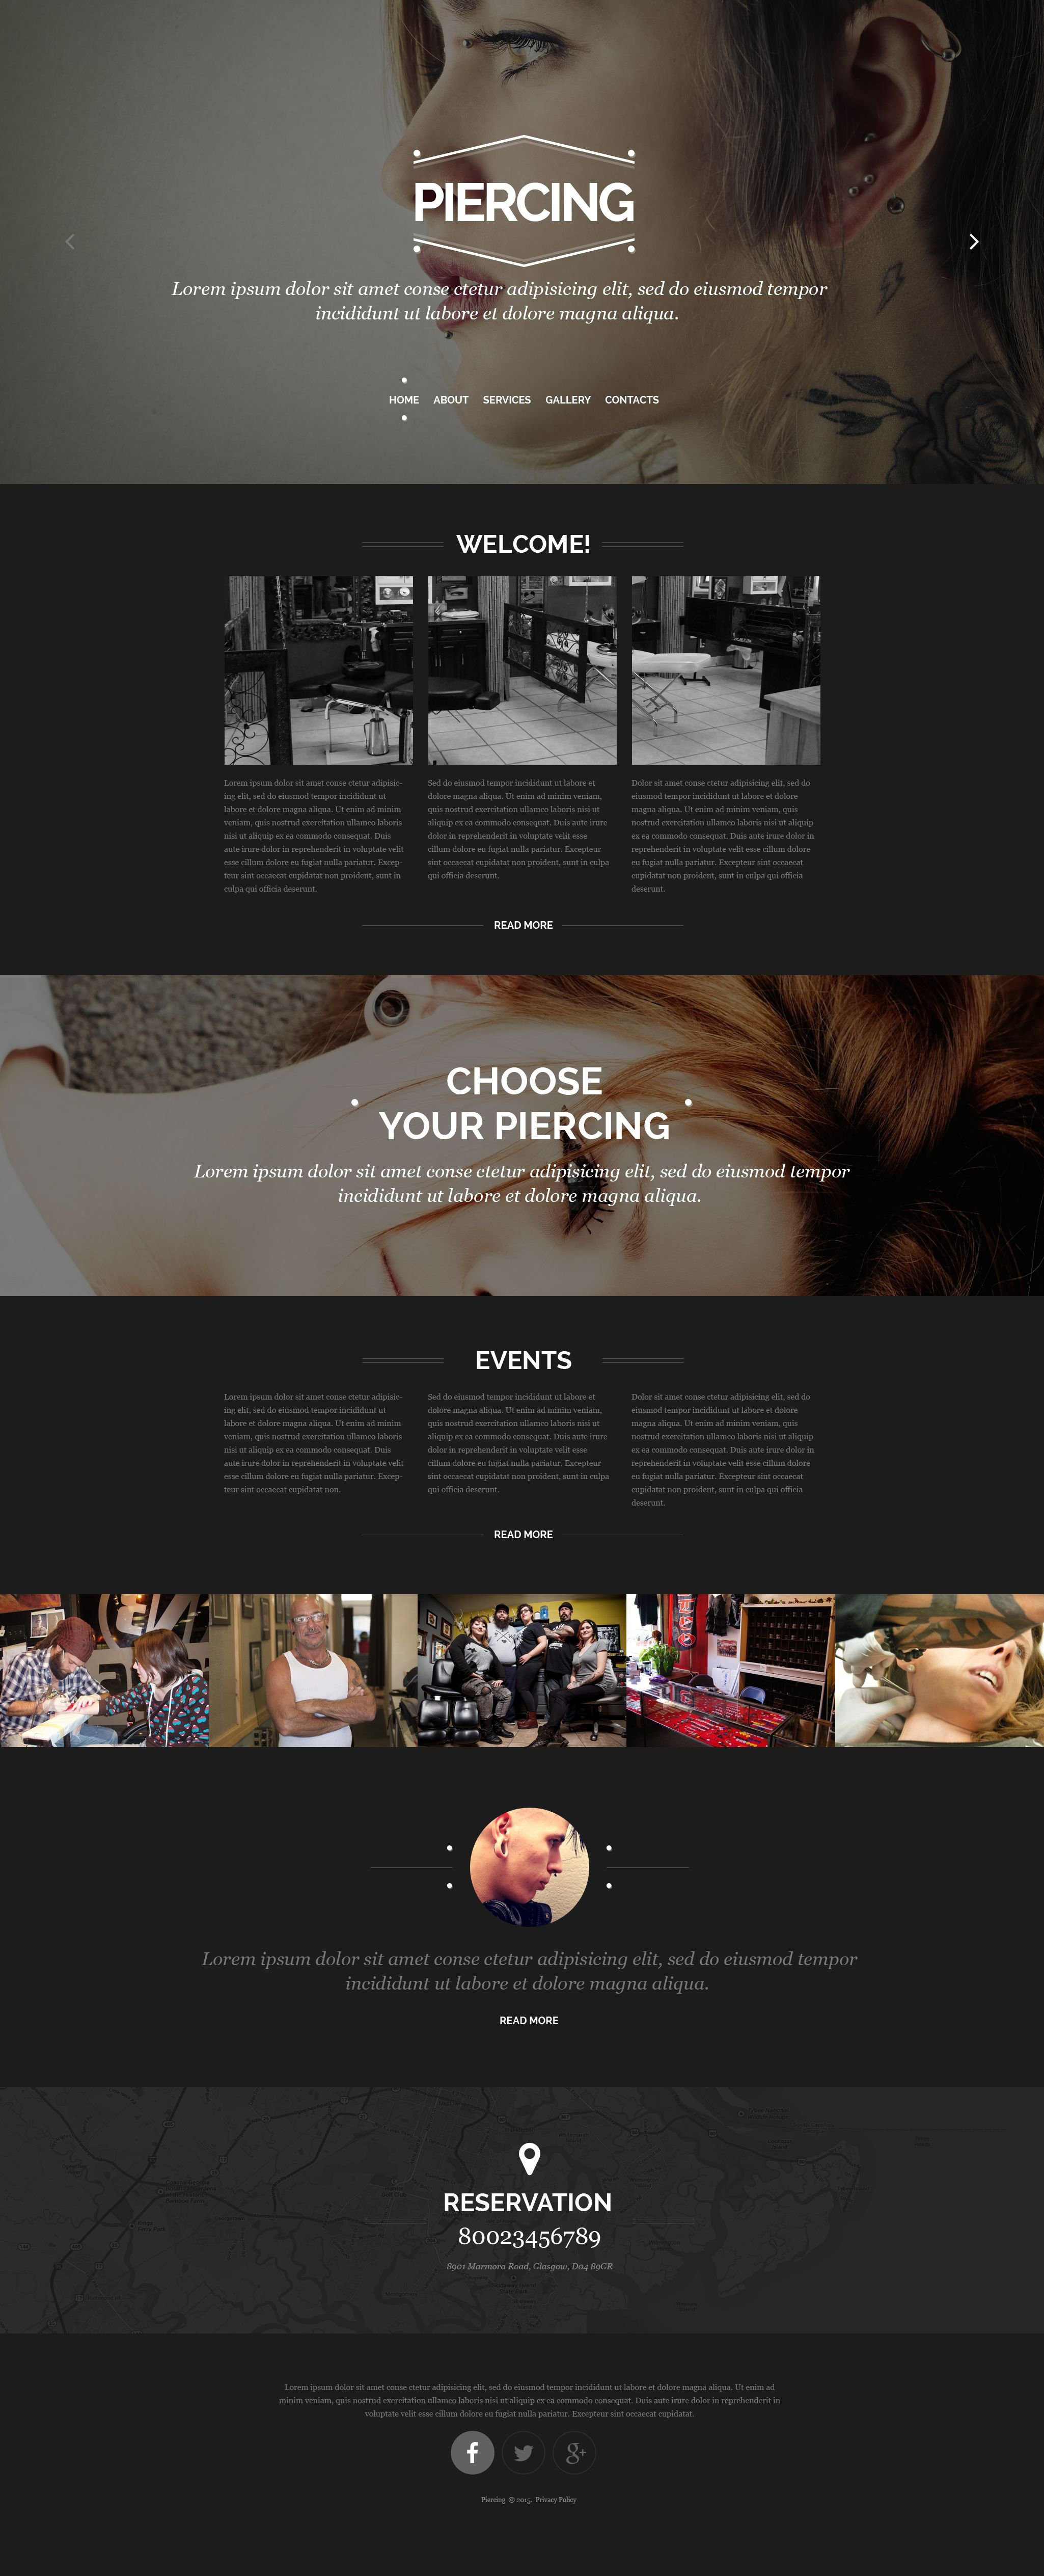 The Piercint Tattoo Salon Bootstrap Design 53507, one of the best website templates of its kind (beauty, most popular), also known as piercint tattoo salon website template, body website template, art blog website template, wordpress website template, artist website template, artistic website template, fashion website template, cool website template, picture website template, beauty website template, decoration website template, skin website template, ornament and related with piercint tattoo salon, body, art blog, wordpress, artist, artistic, fashion, cool, picture, beauty, decoration, skin, ornament, etc.